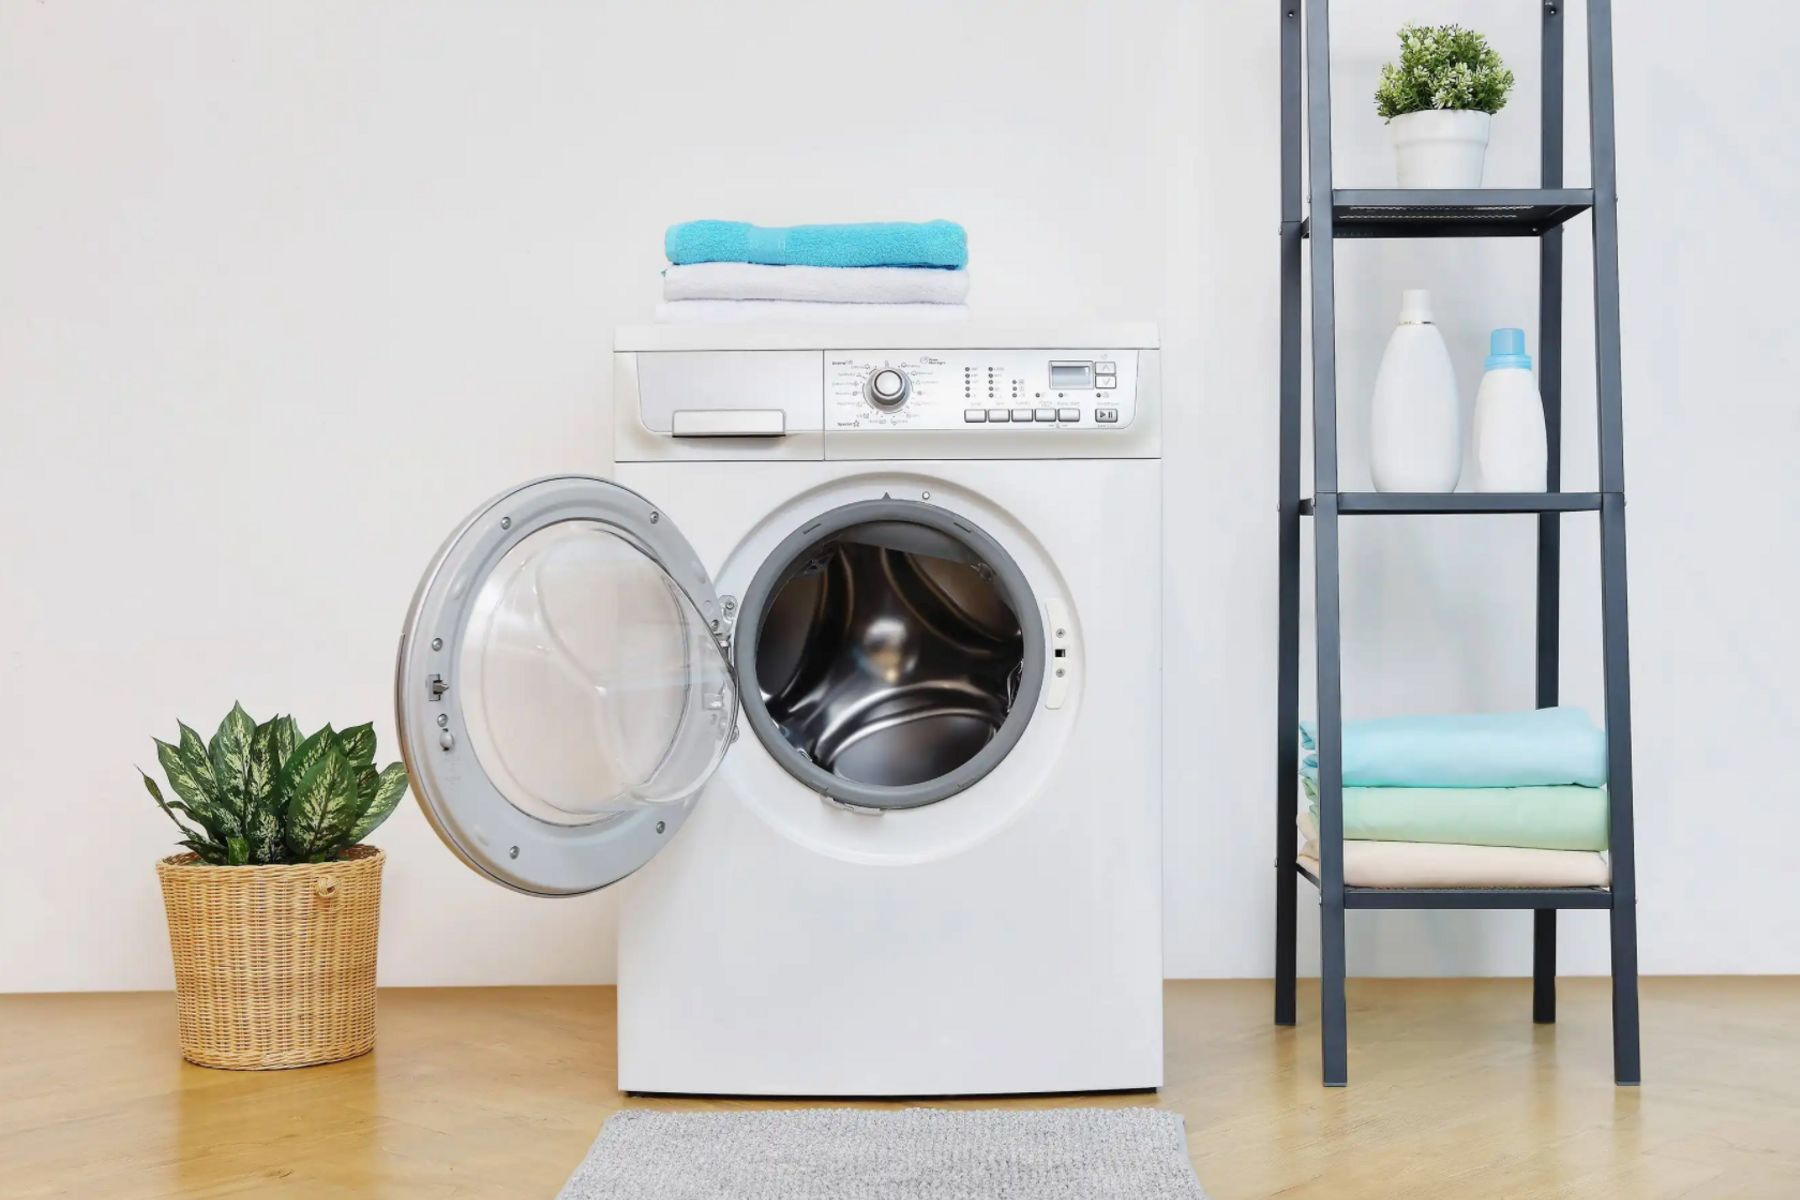 Open washing machine next to plant and storage